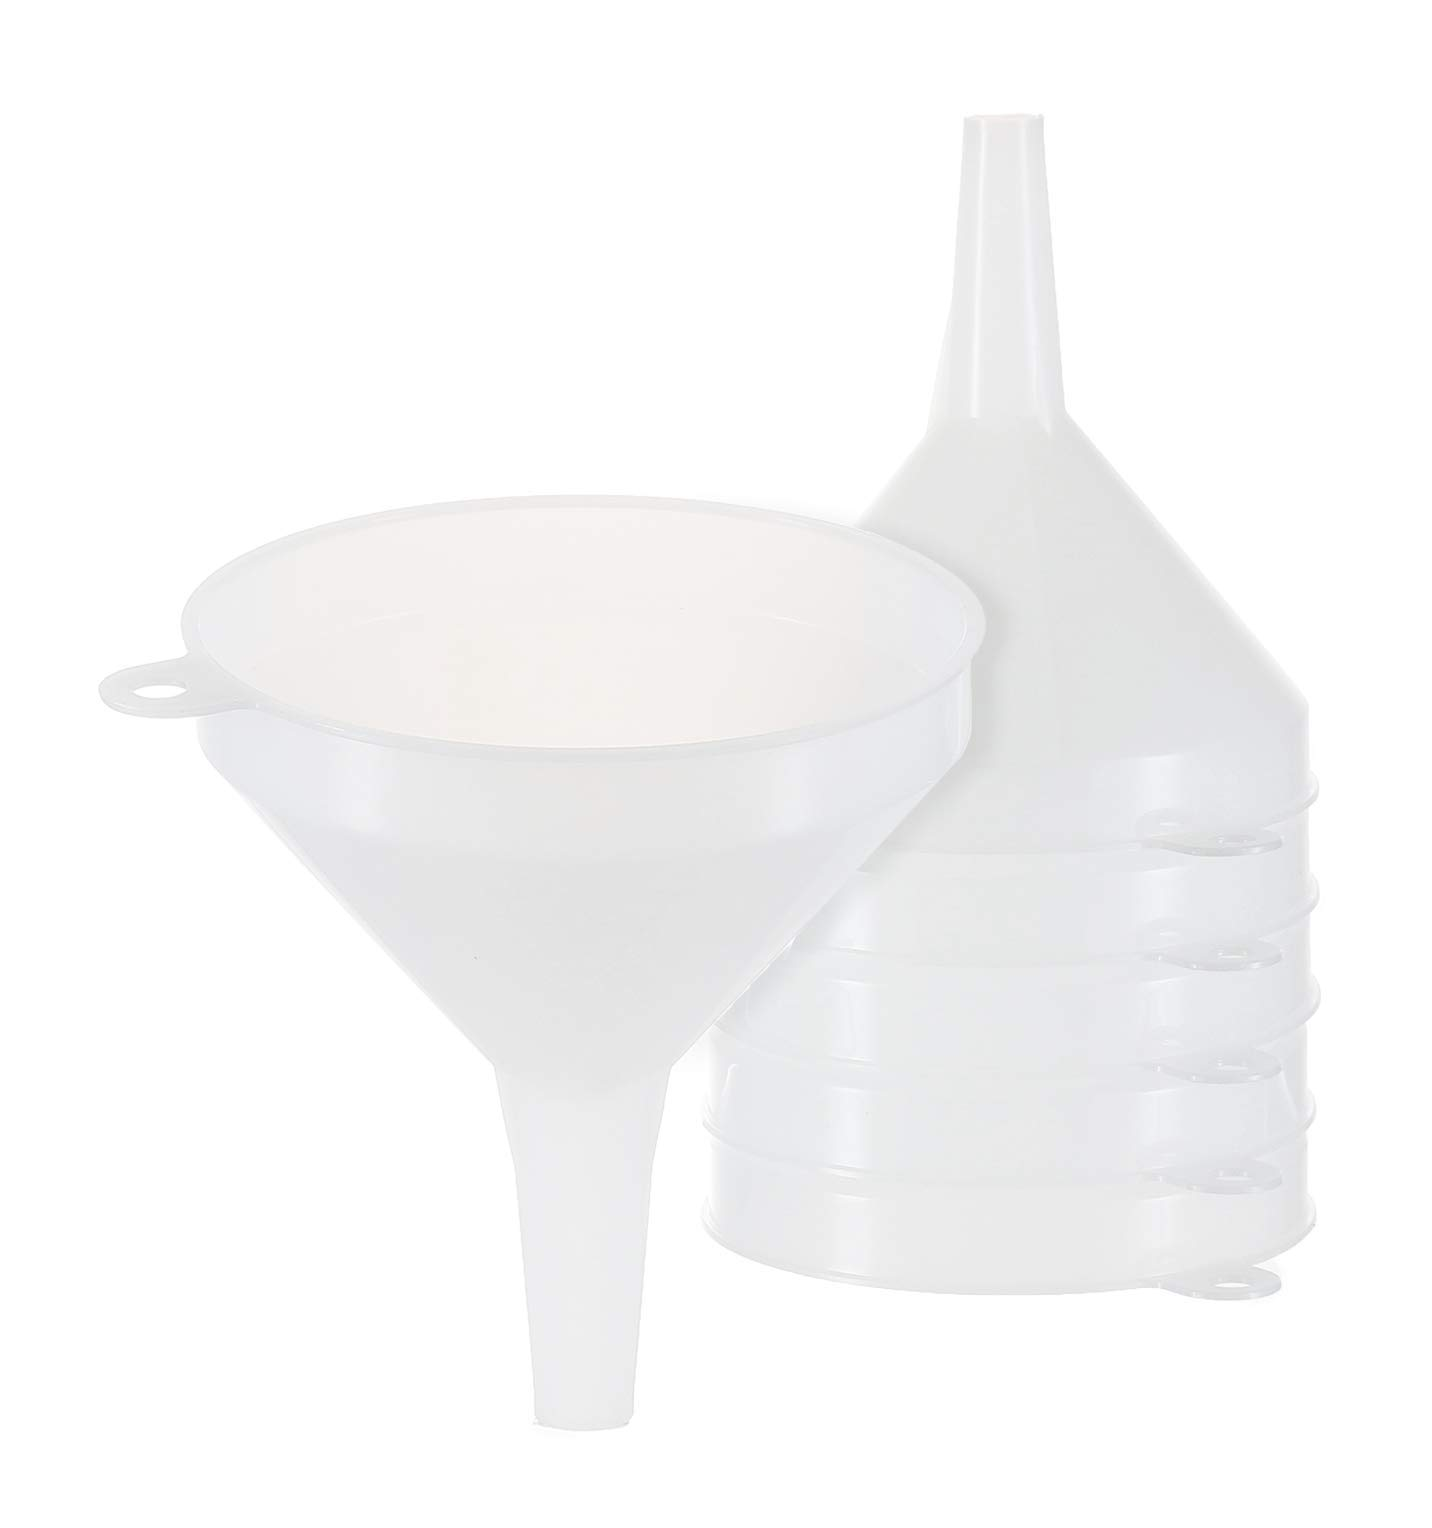 "6 Pack - 4"" Multi-Purpose Funnels - General Purpose Plastic Funnel with Long Reaching Spout for Easy and Smooth Content Transfer - Food Safe/BPA Free"